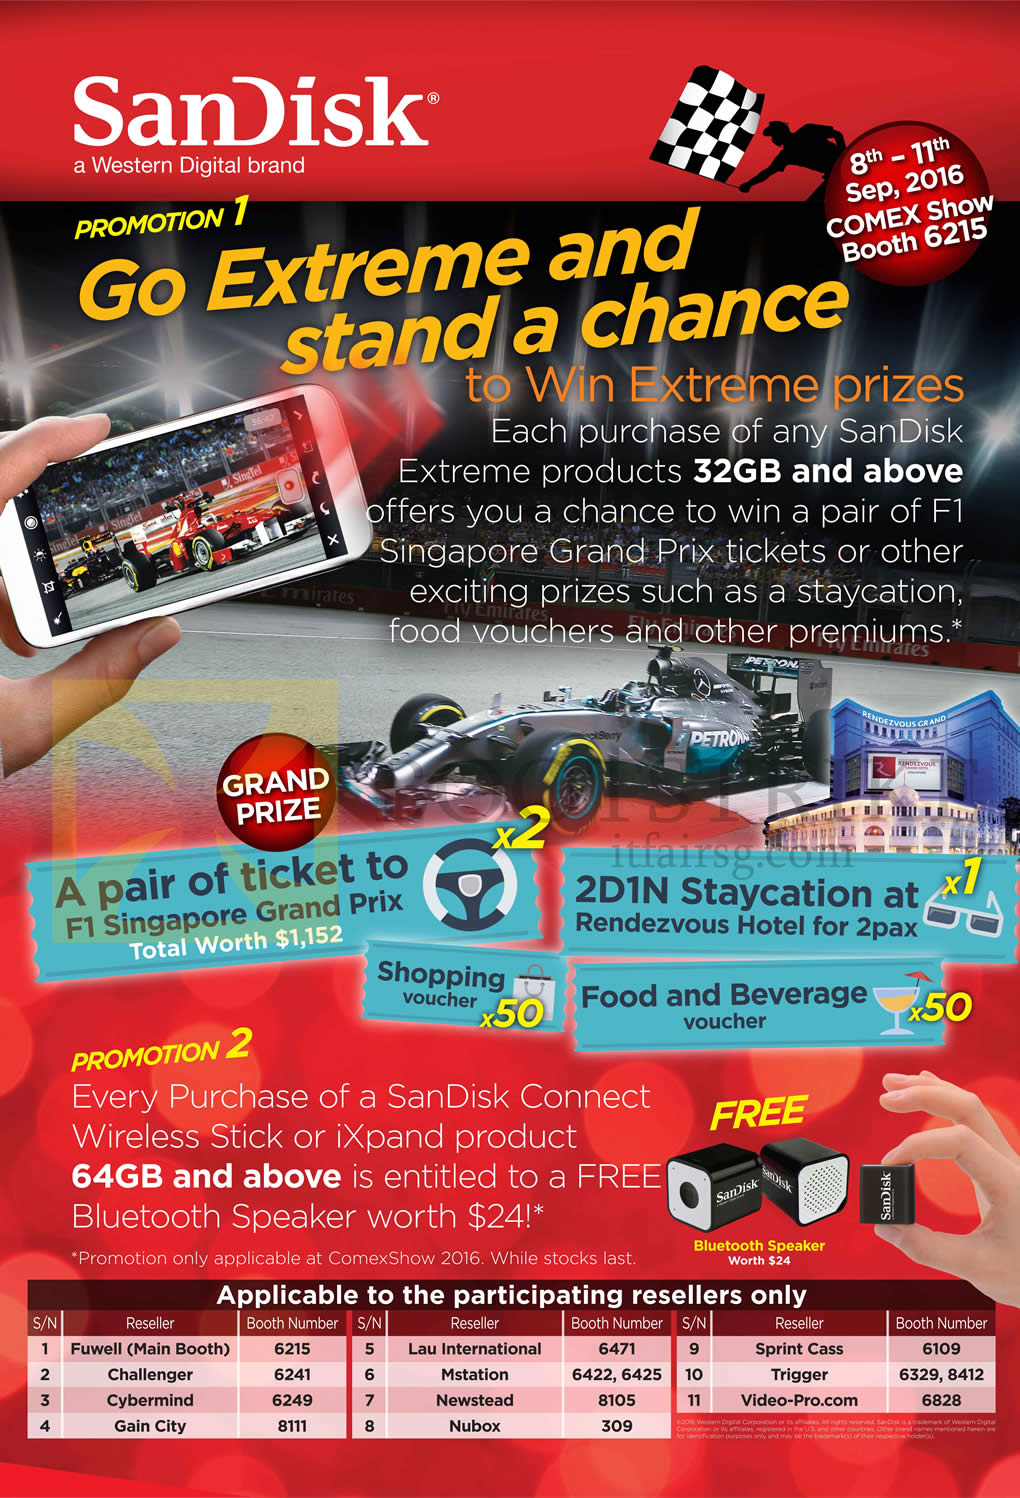 COMEX 2016 price list image brochure of Sandisk Prizes, Promotions, Resellers, Booths